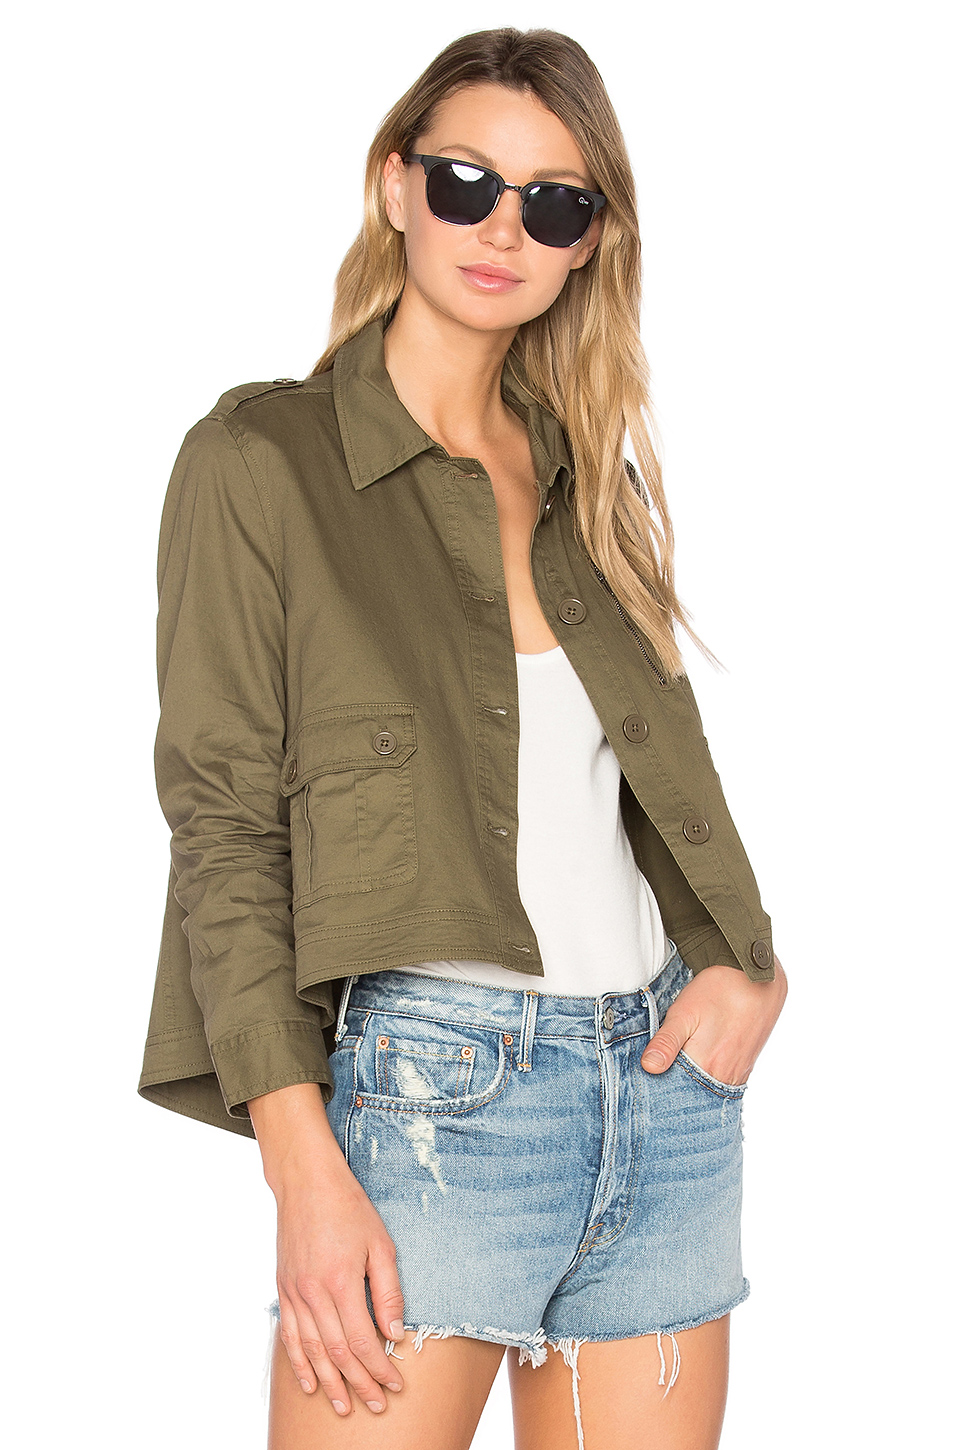 BB DAKOTA Jack By  Cardamom Jacket in Fern Green